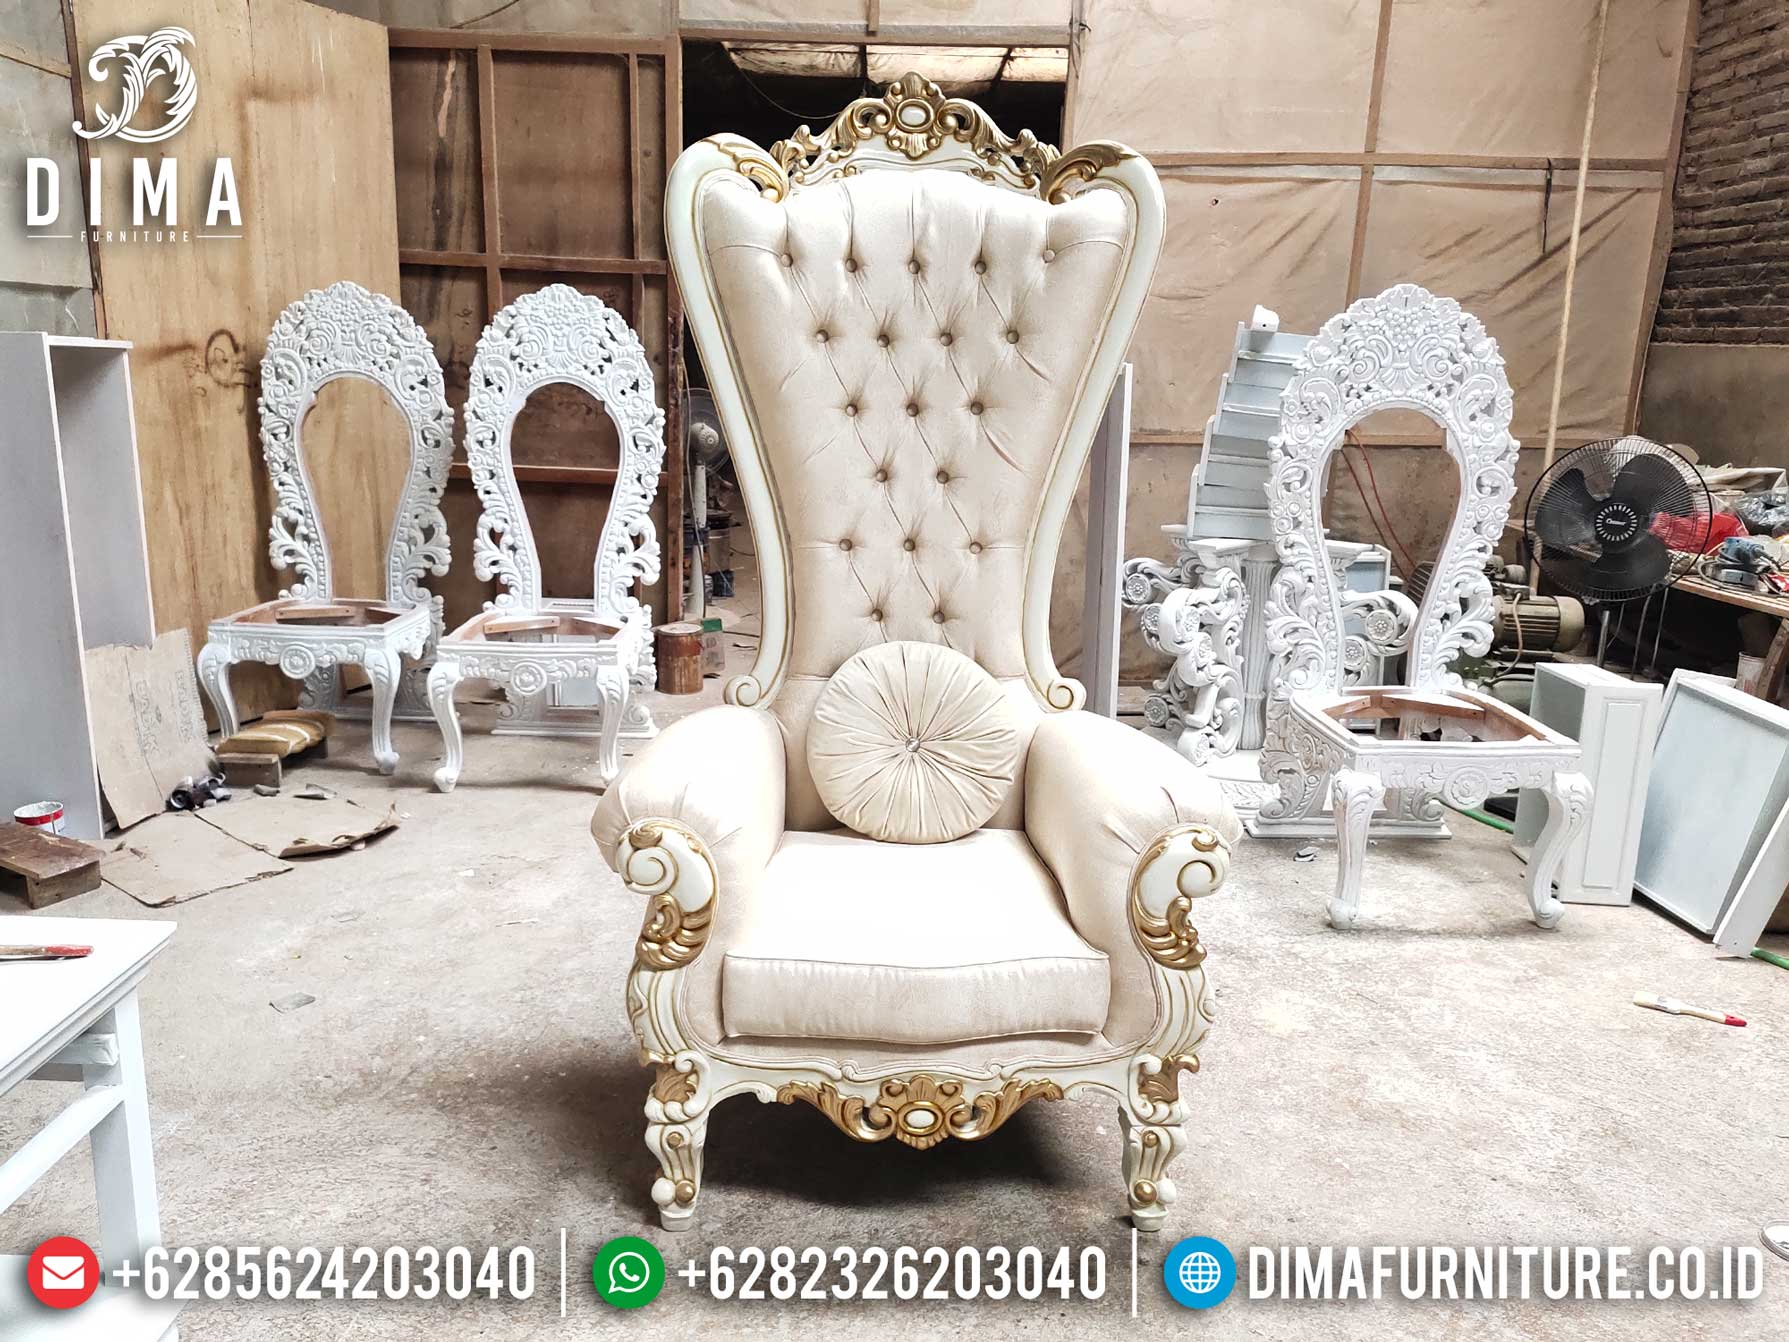 Harga Sofa Tamu Mewah Princes Syahrini Luxury Carving New Luxury Design TTJ-1278